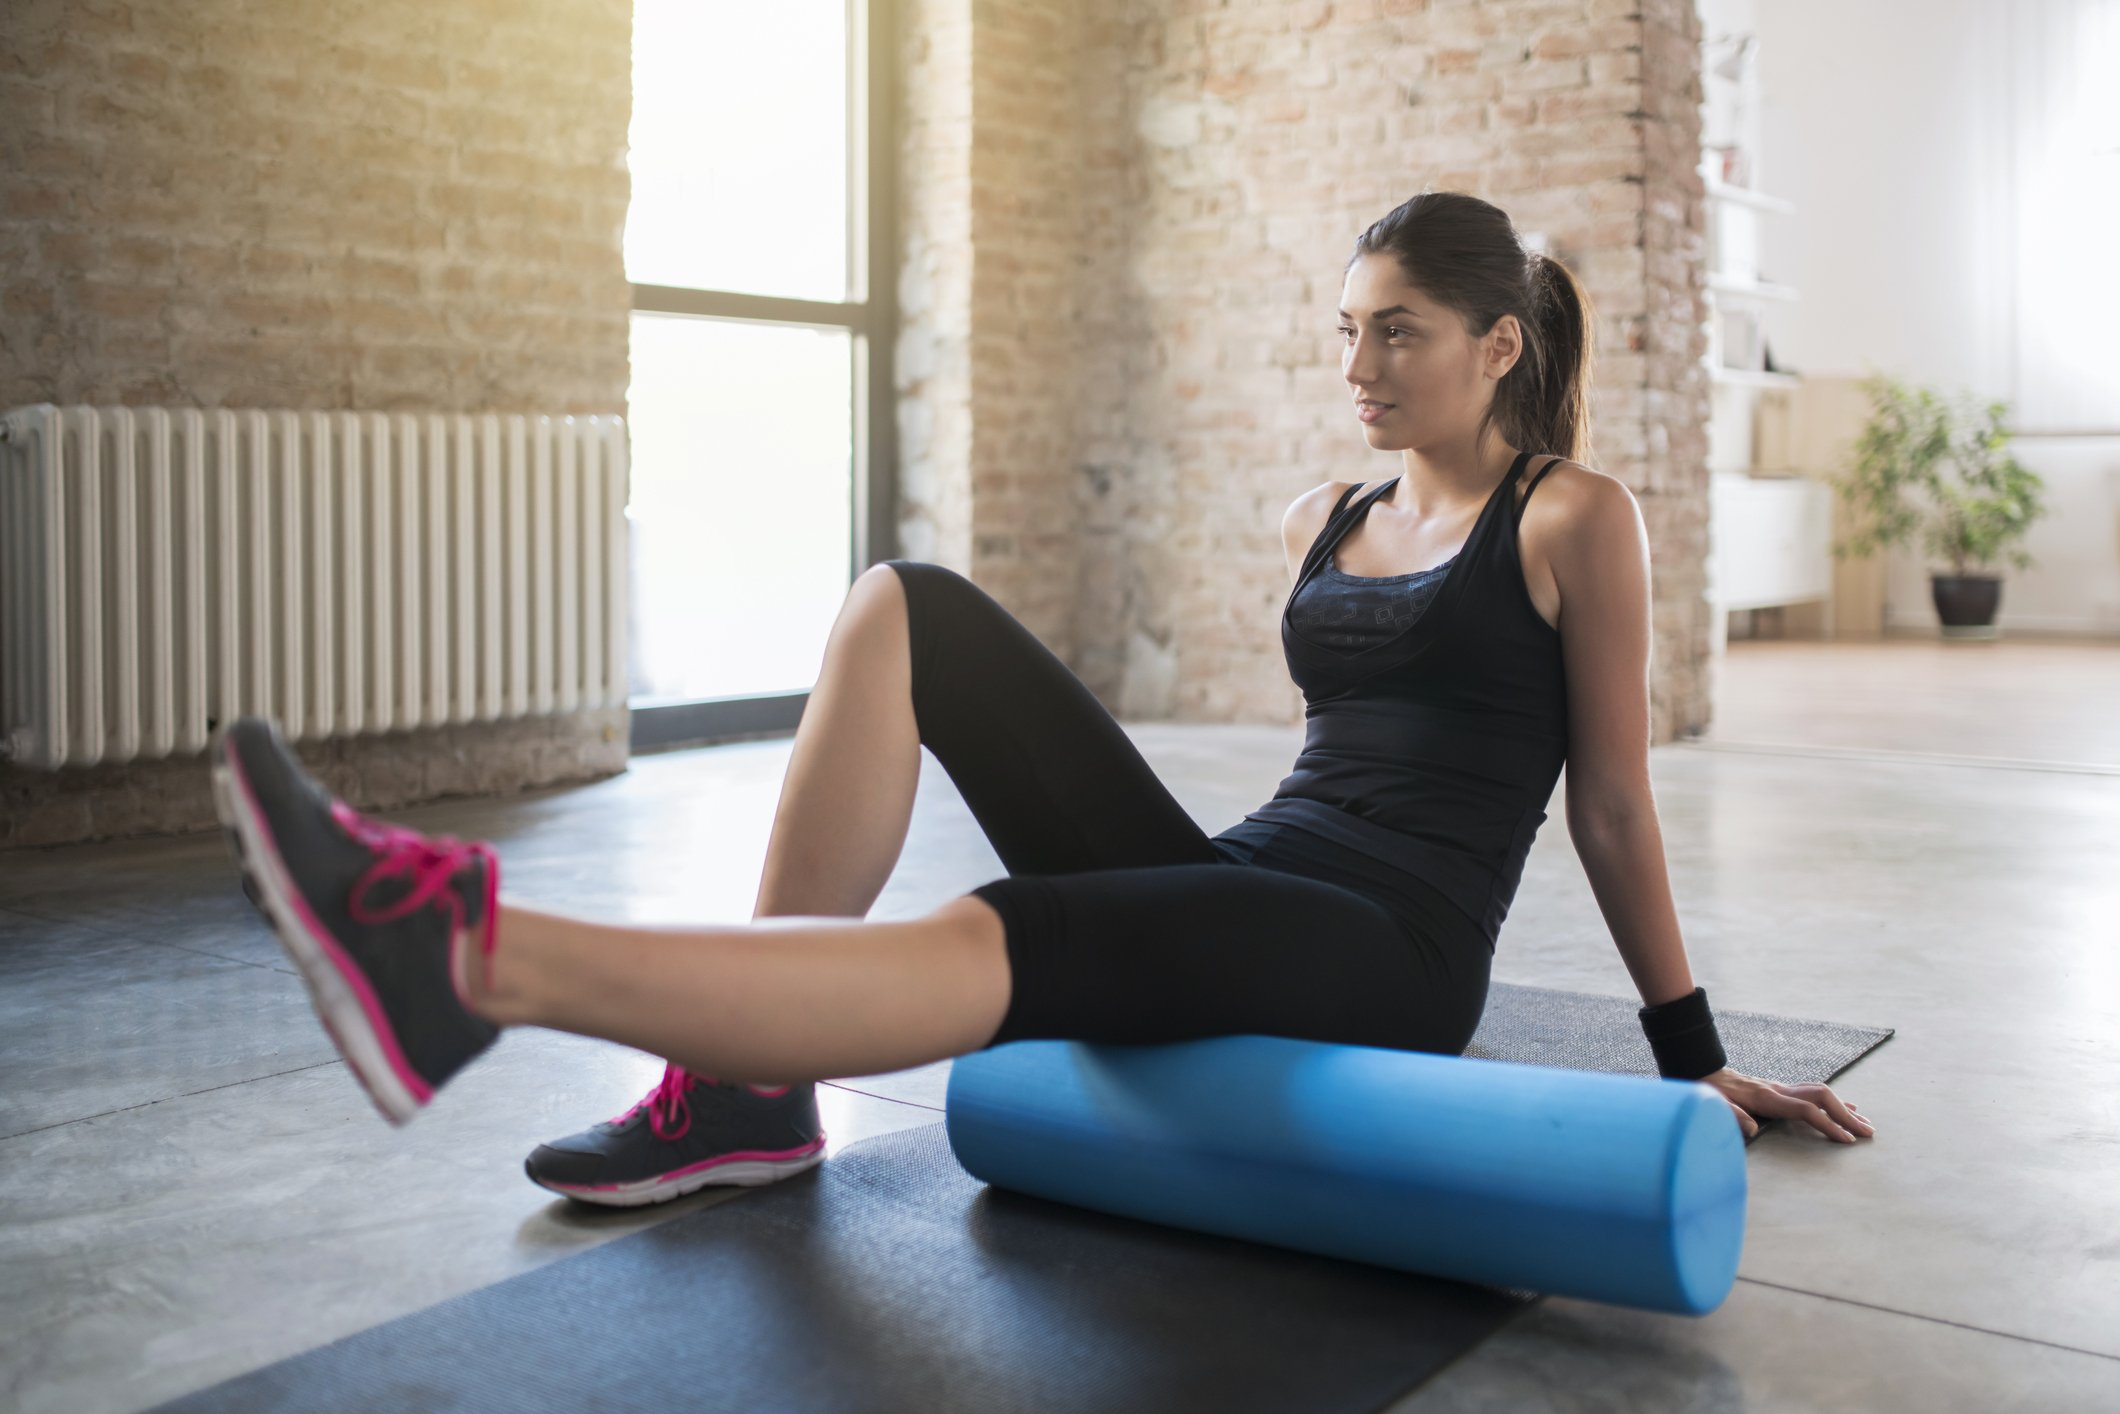 A woman learn how to use a foam roller for pain relief at CoxHealth's Foam Roller Workshop.